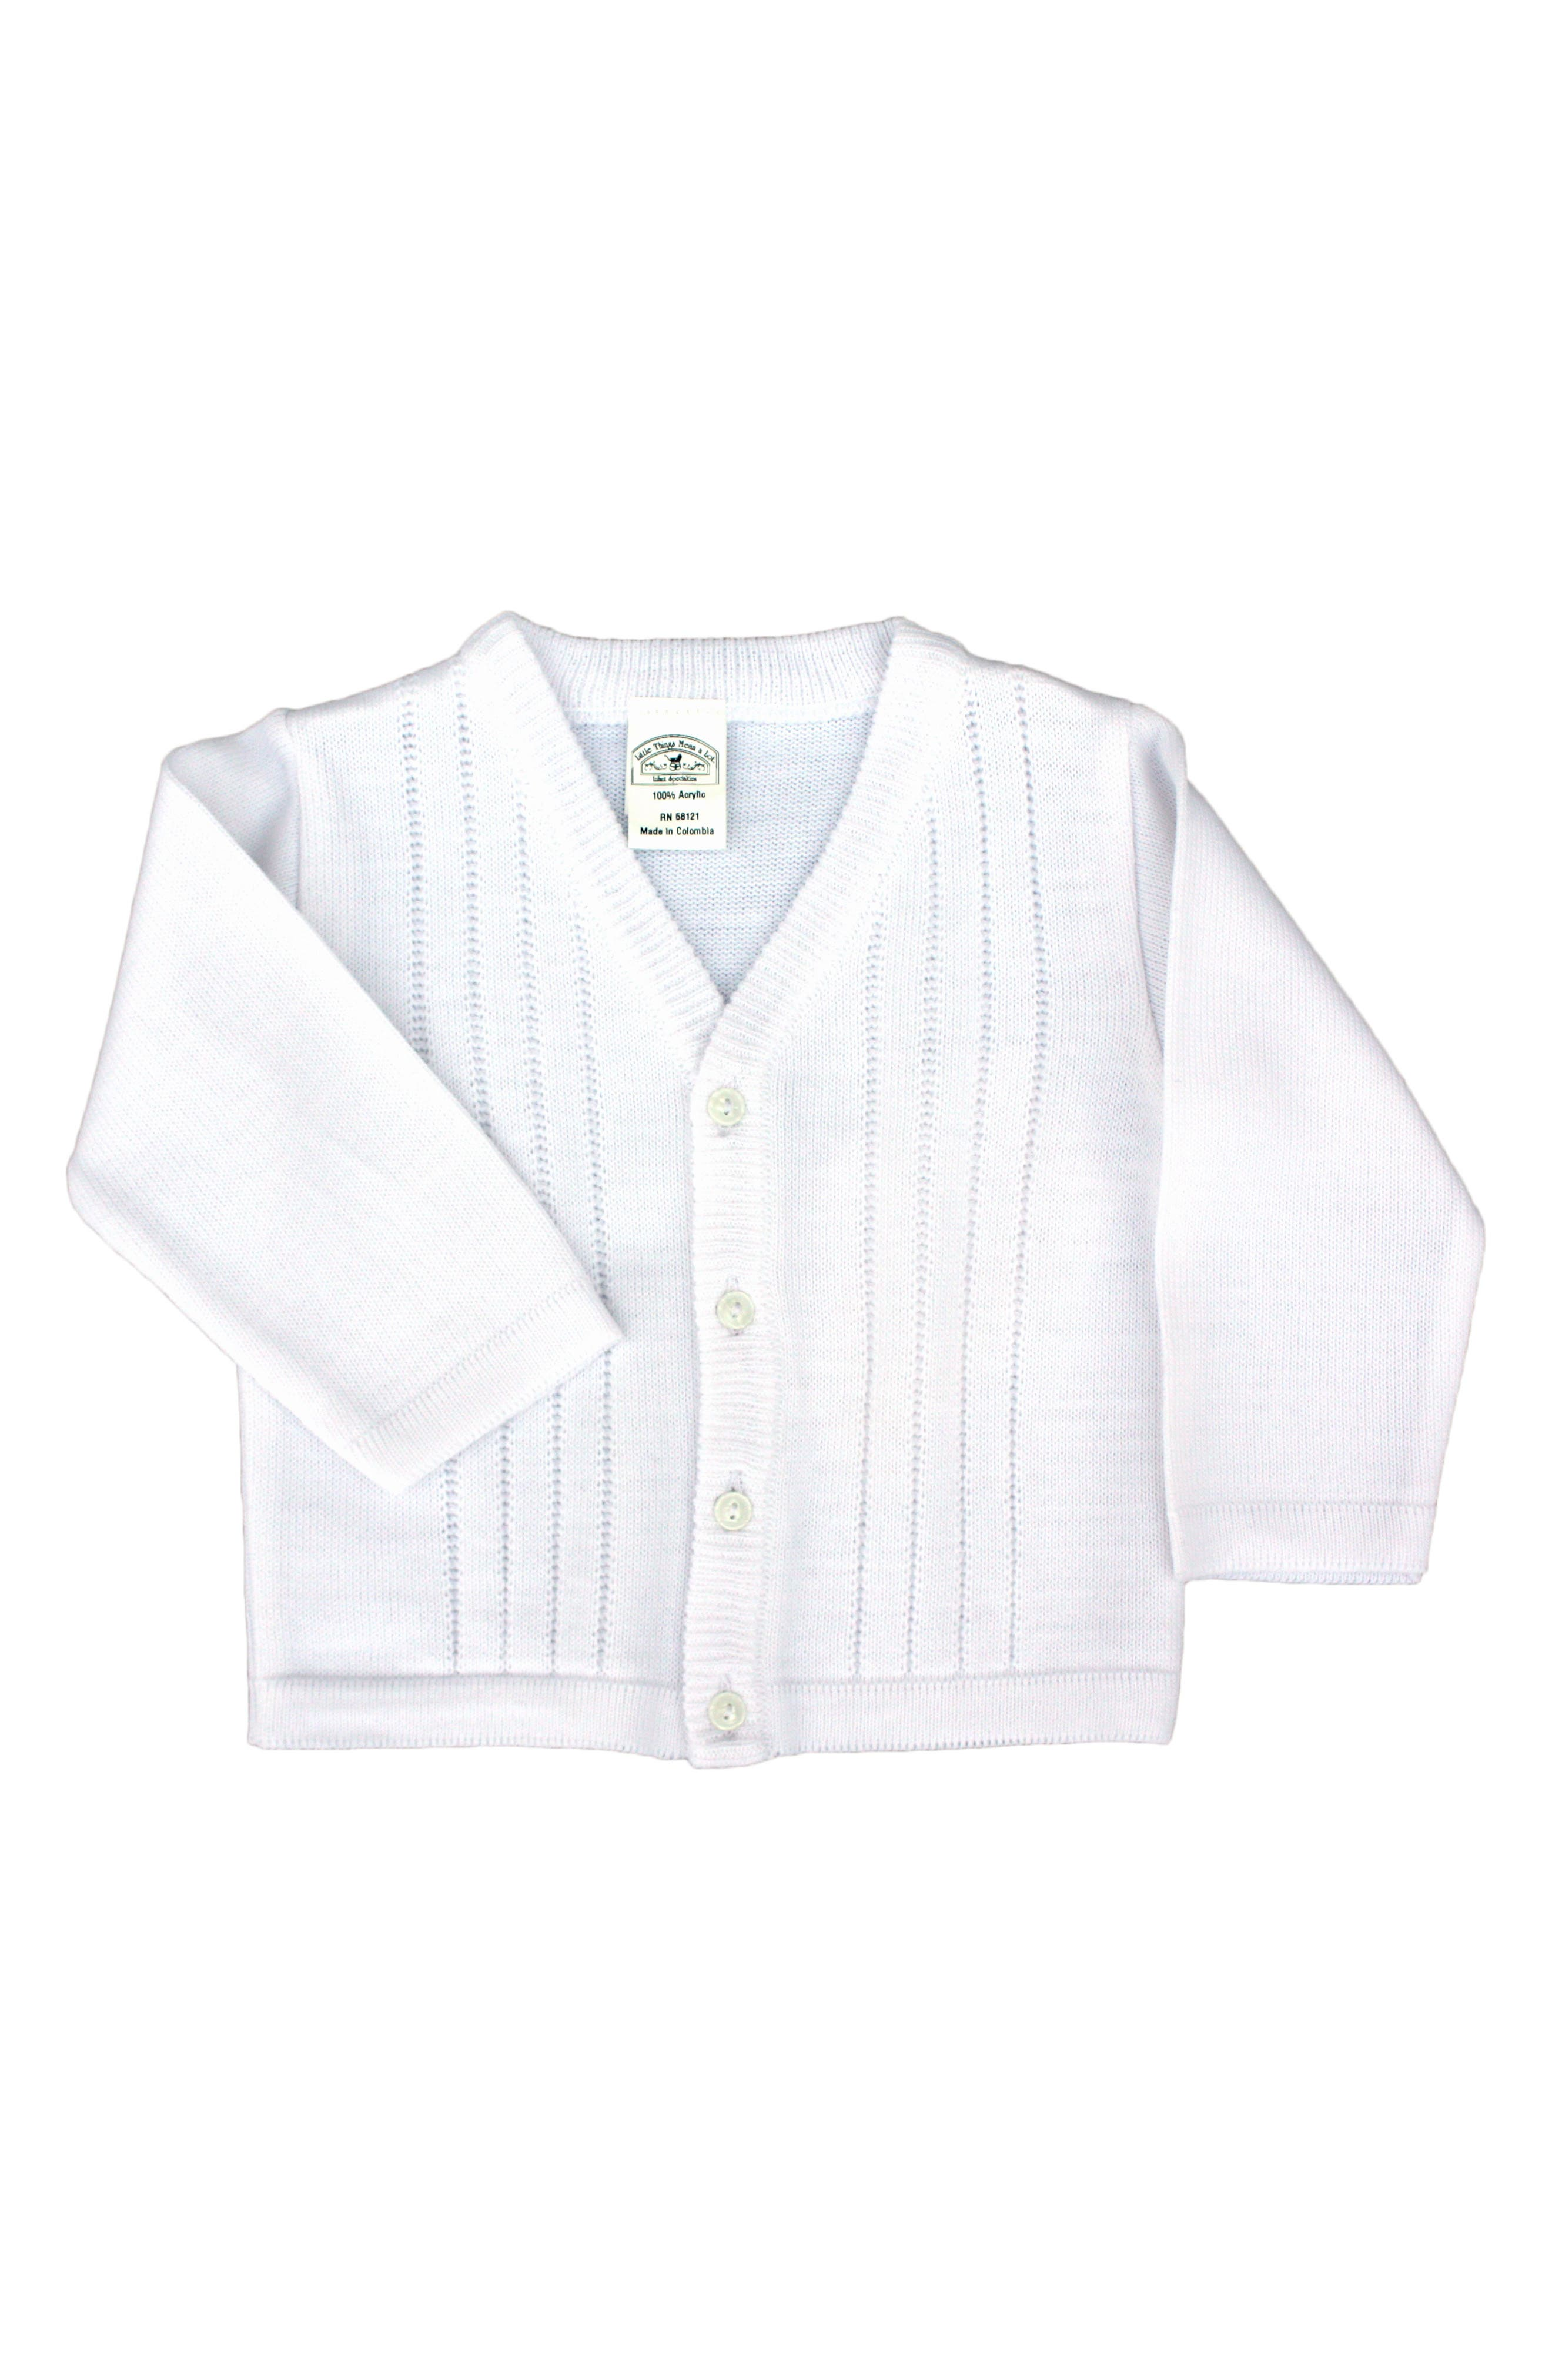 Alternate Image 1 Selected - Little Things Mean A Lot Cardigan (Baby Boys)